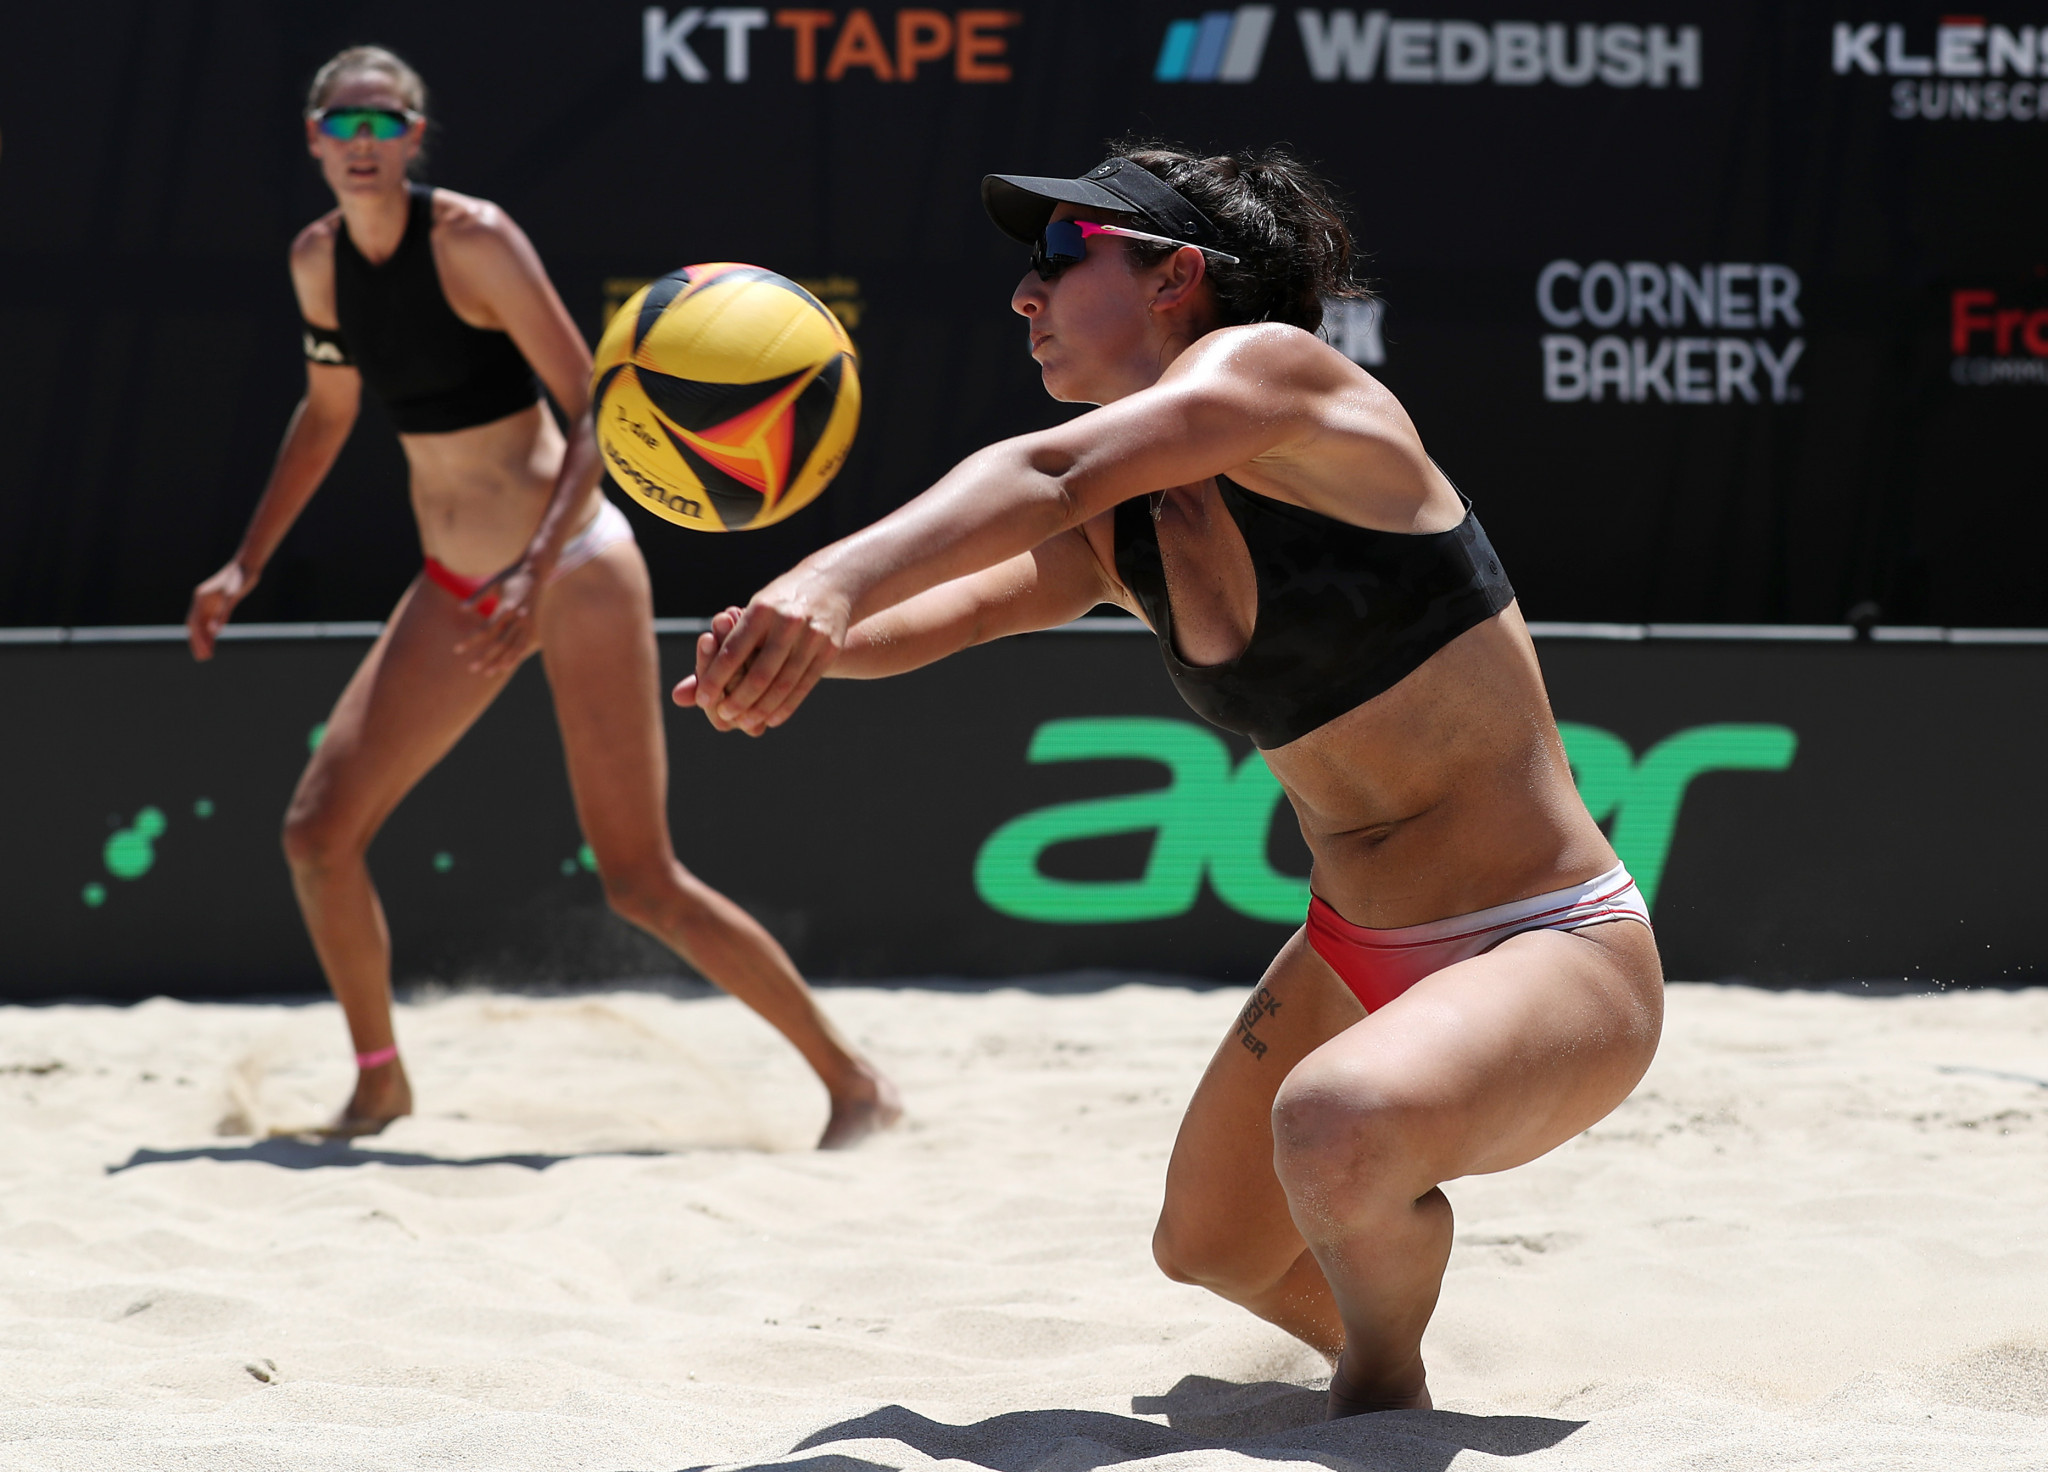 FIVB creates Cancun Hub event to limit travel for players seeking Tokyo 2020 ranking points